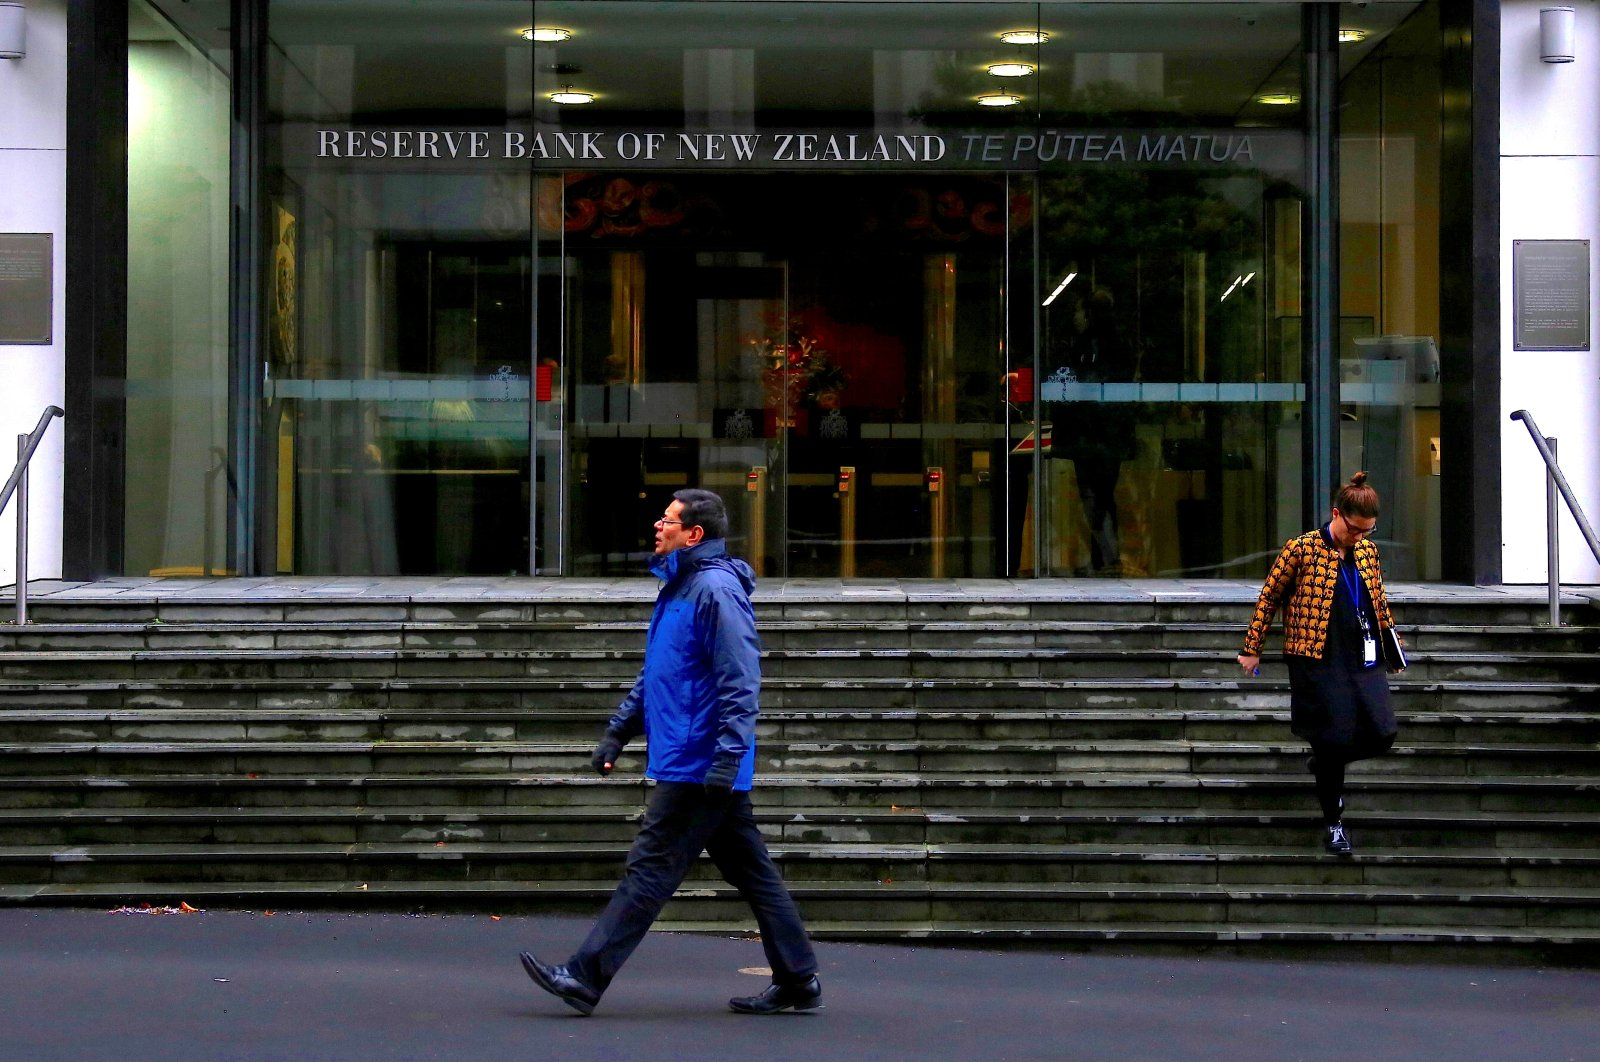 Pedestrians walk near the main entrance to the Reserve Bank of New Zealand located in central Wellington, New Zealand, July 3, 2017. (Reuters Photo)